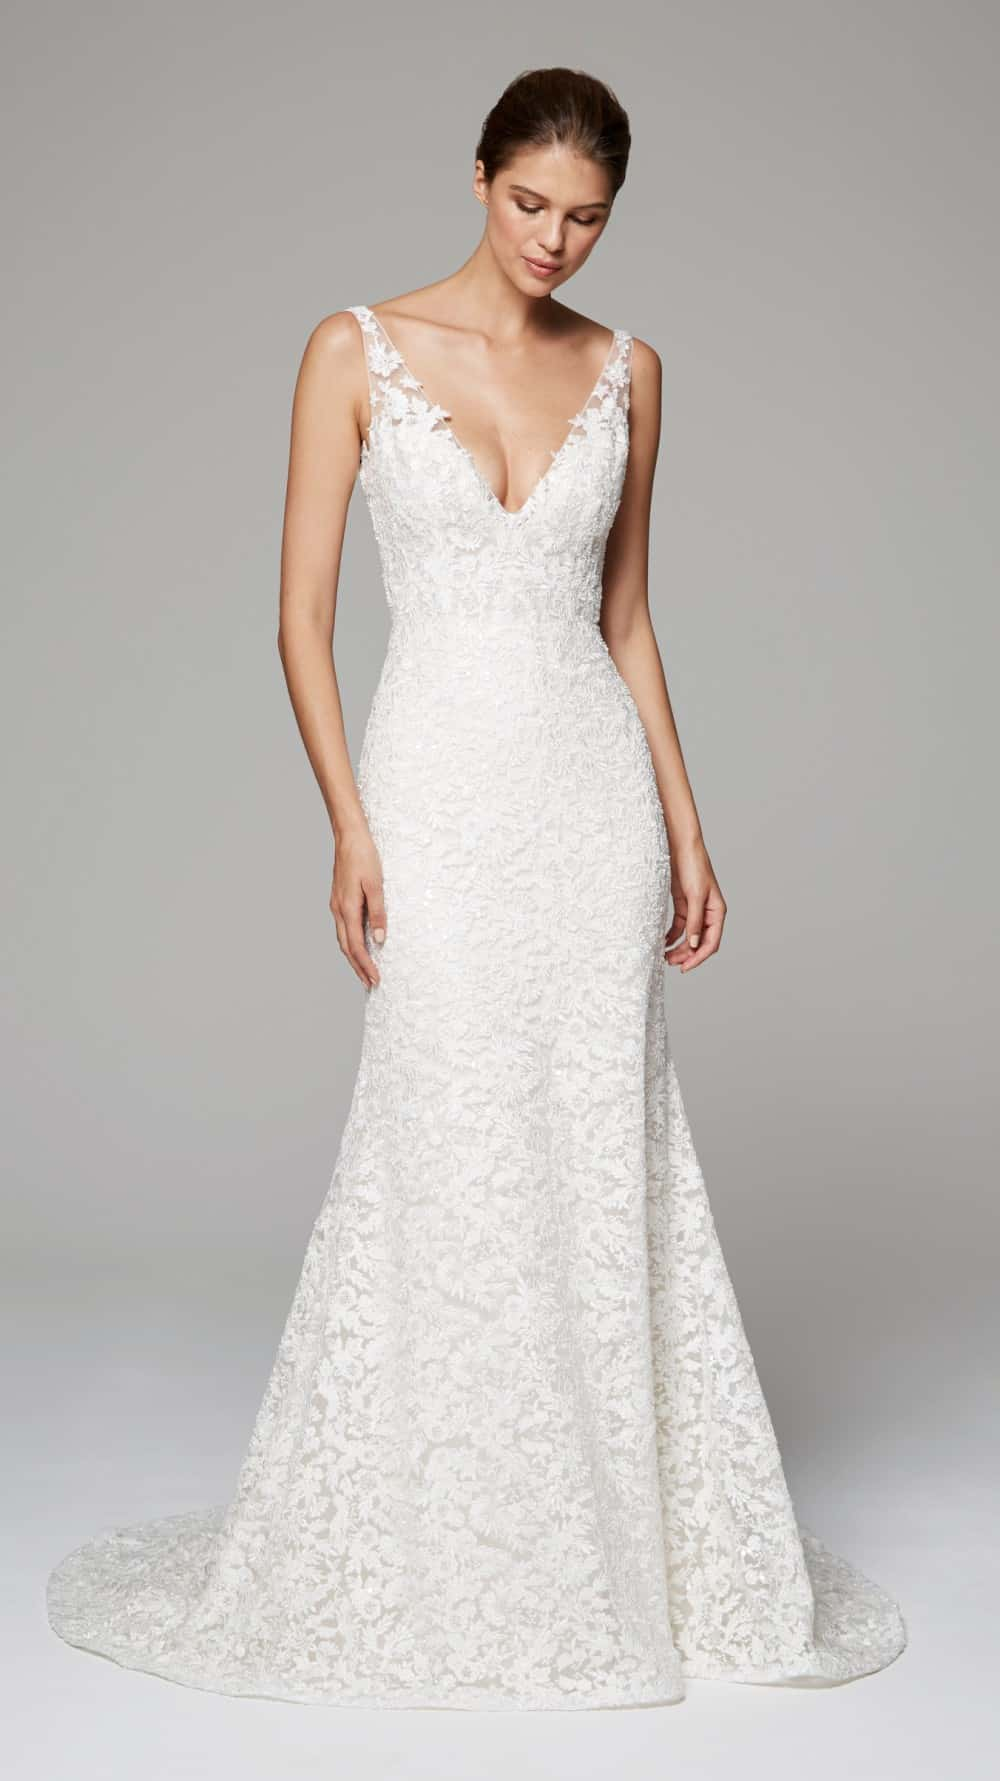 aubrey by anne barge lace v neck wedding dress 2018